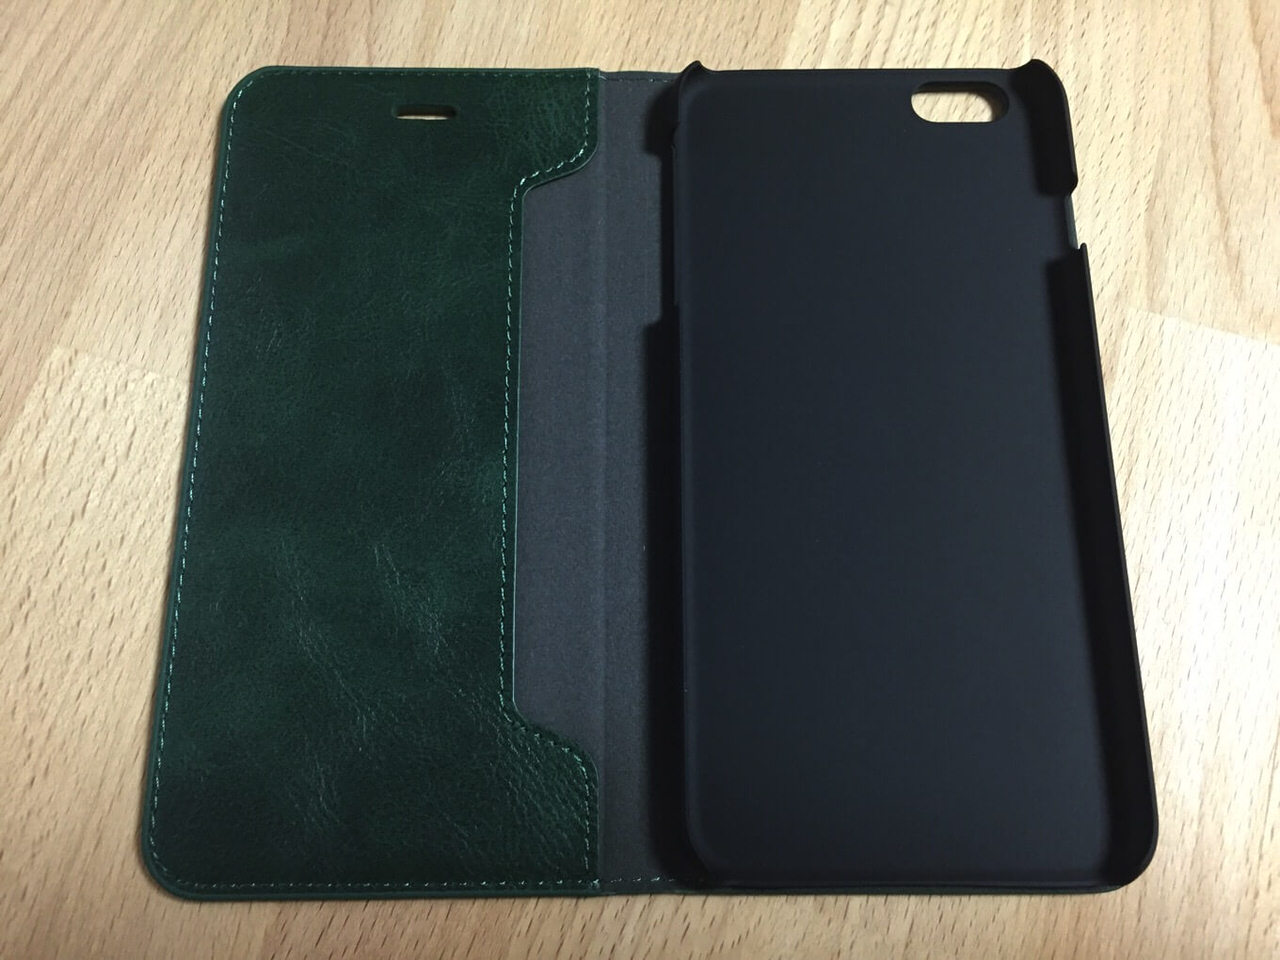 iphone6splus-notebook-case-review-4